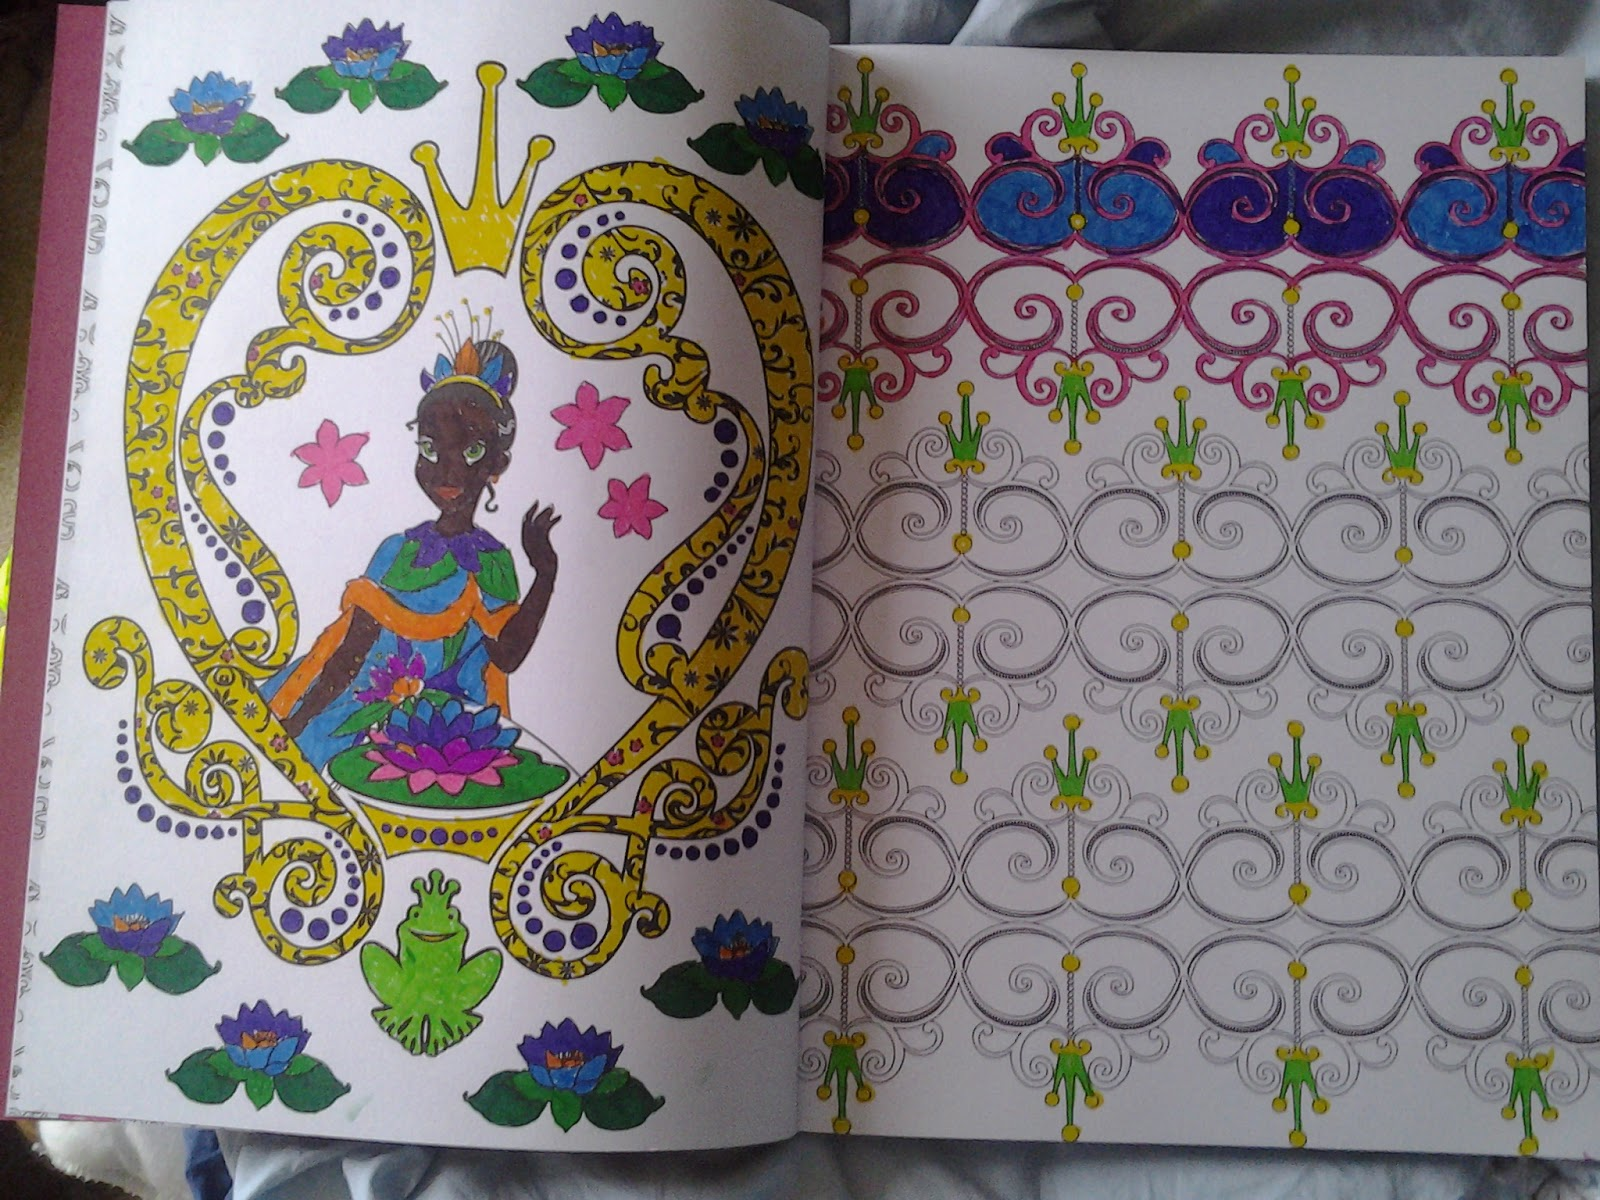 No Gaming But I Relaxed With Colouring In Of These Pages Fro A Super Cute Disney Princess Art Therapy Book